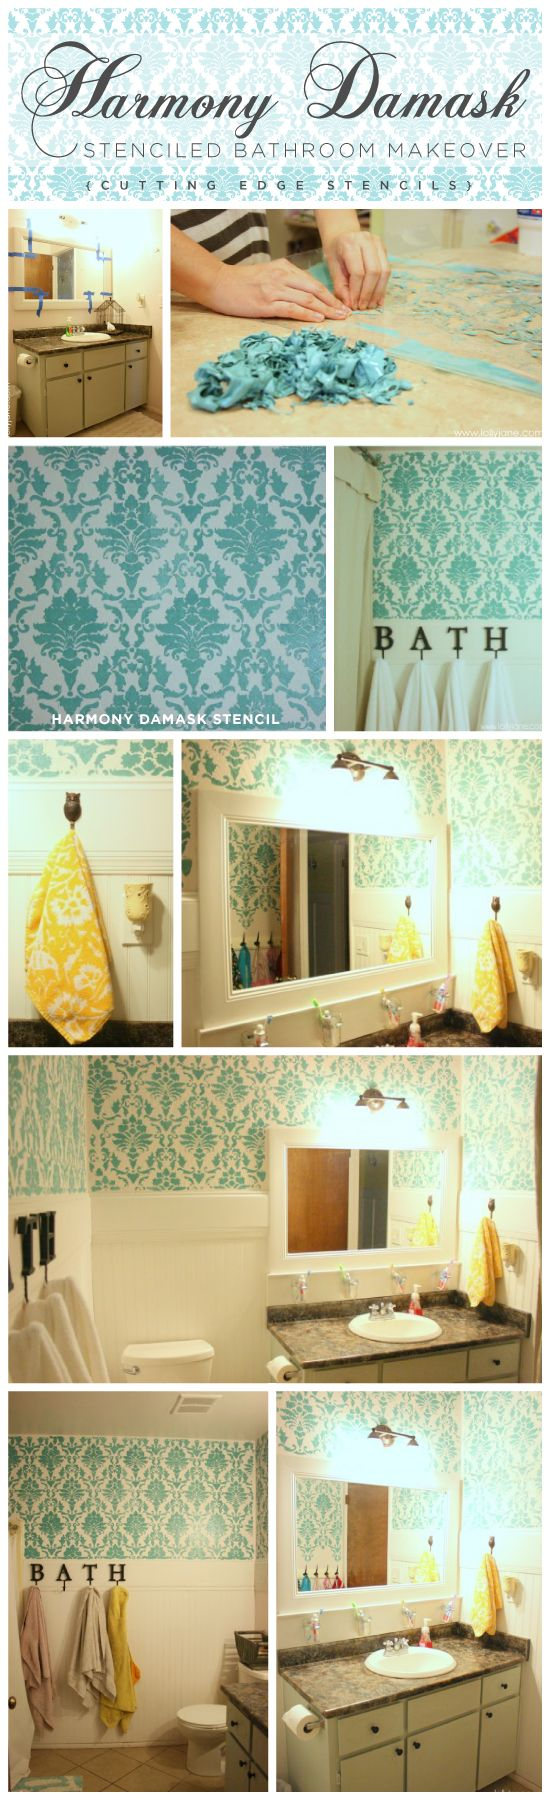 Beautiful and affordable DIY bathroom makeover using the Harmony Damask Stencil by Cutting Edge Stencils. http://www.cuttingedgestencils.com/acanthus-damask-stencil.html